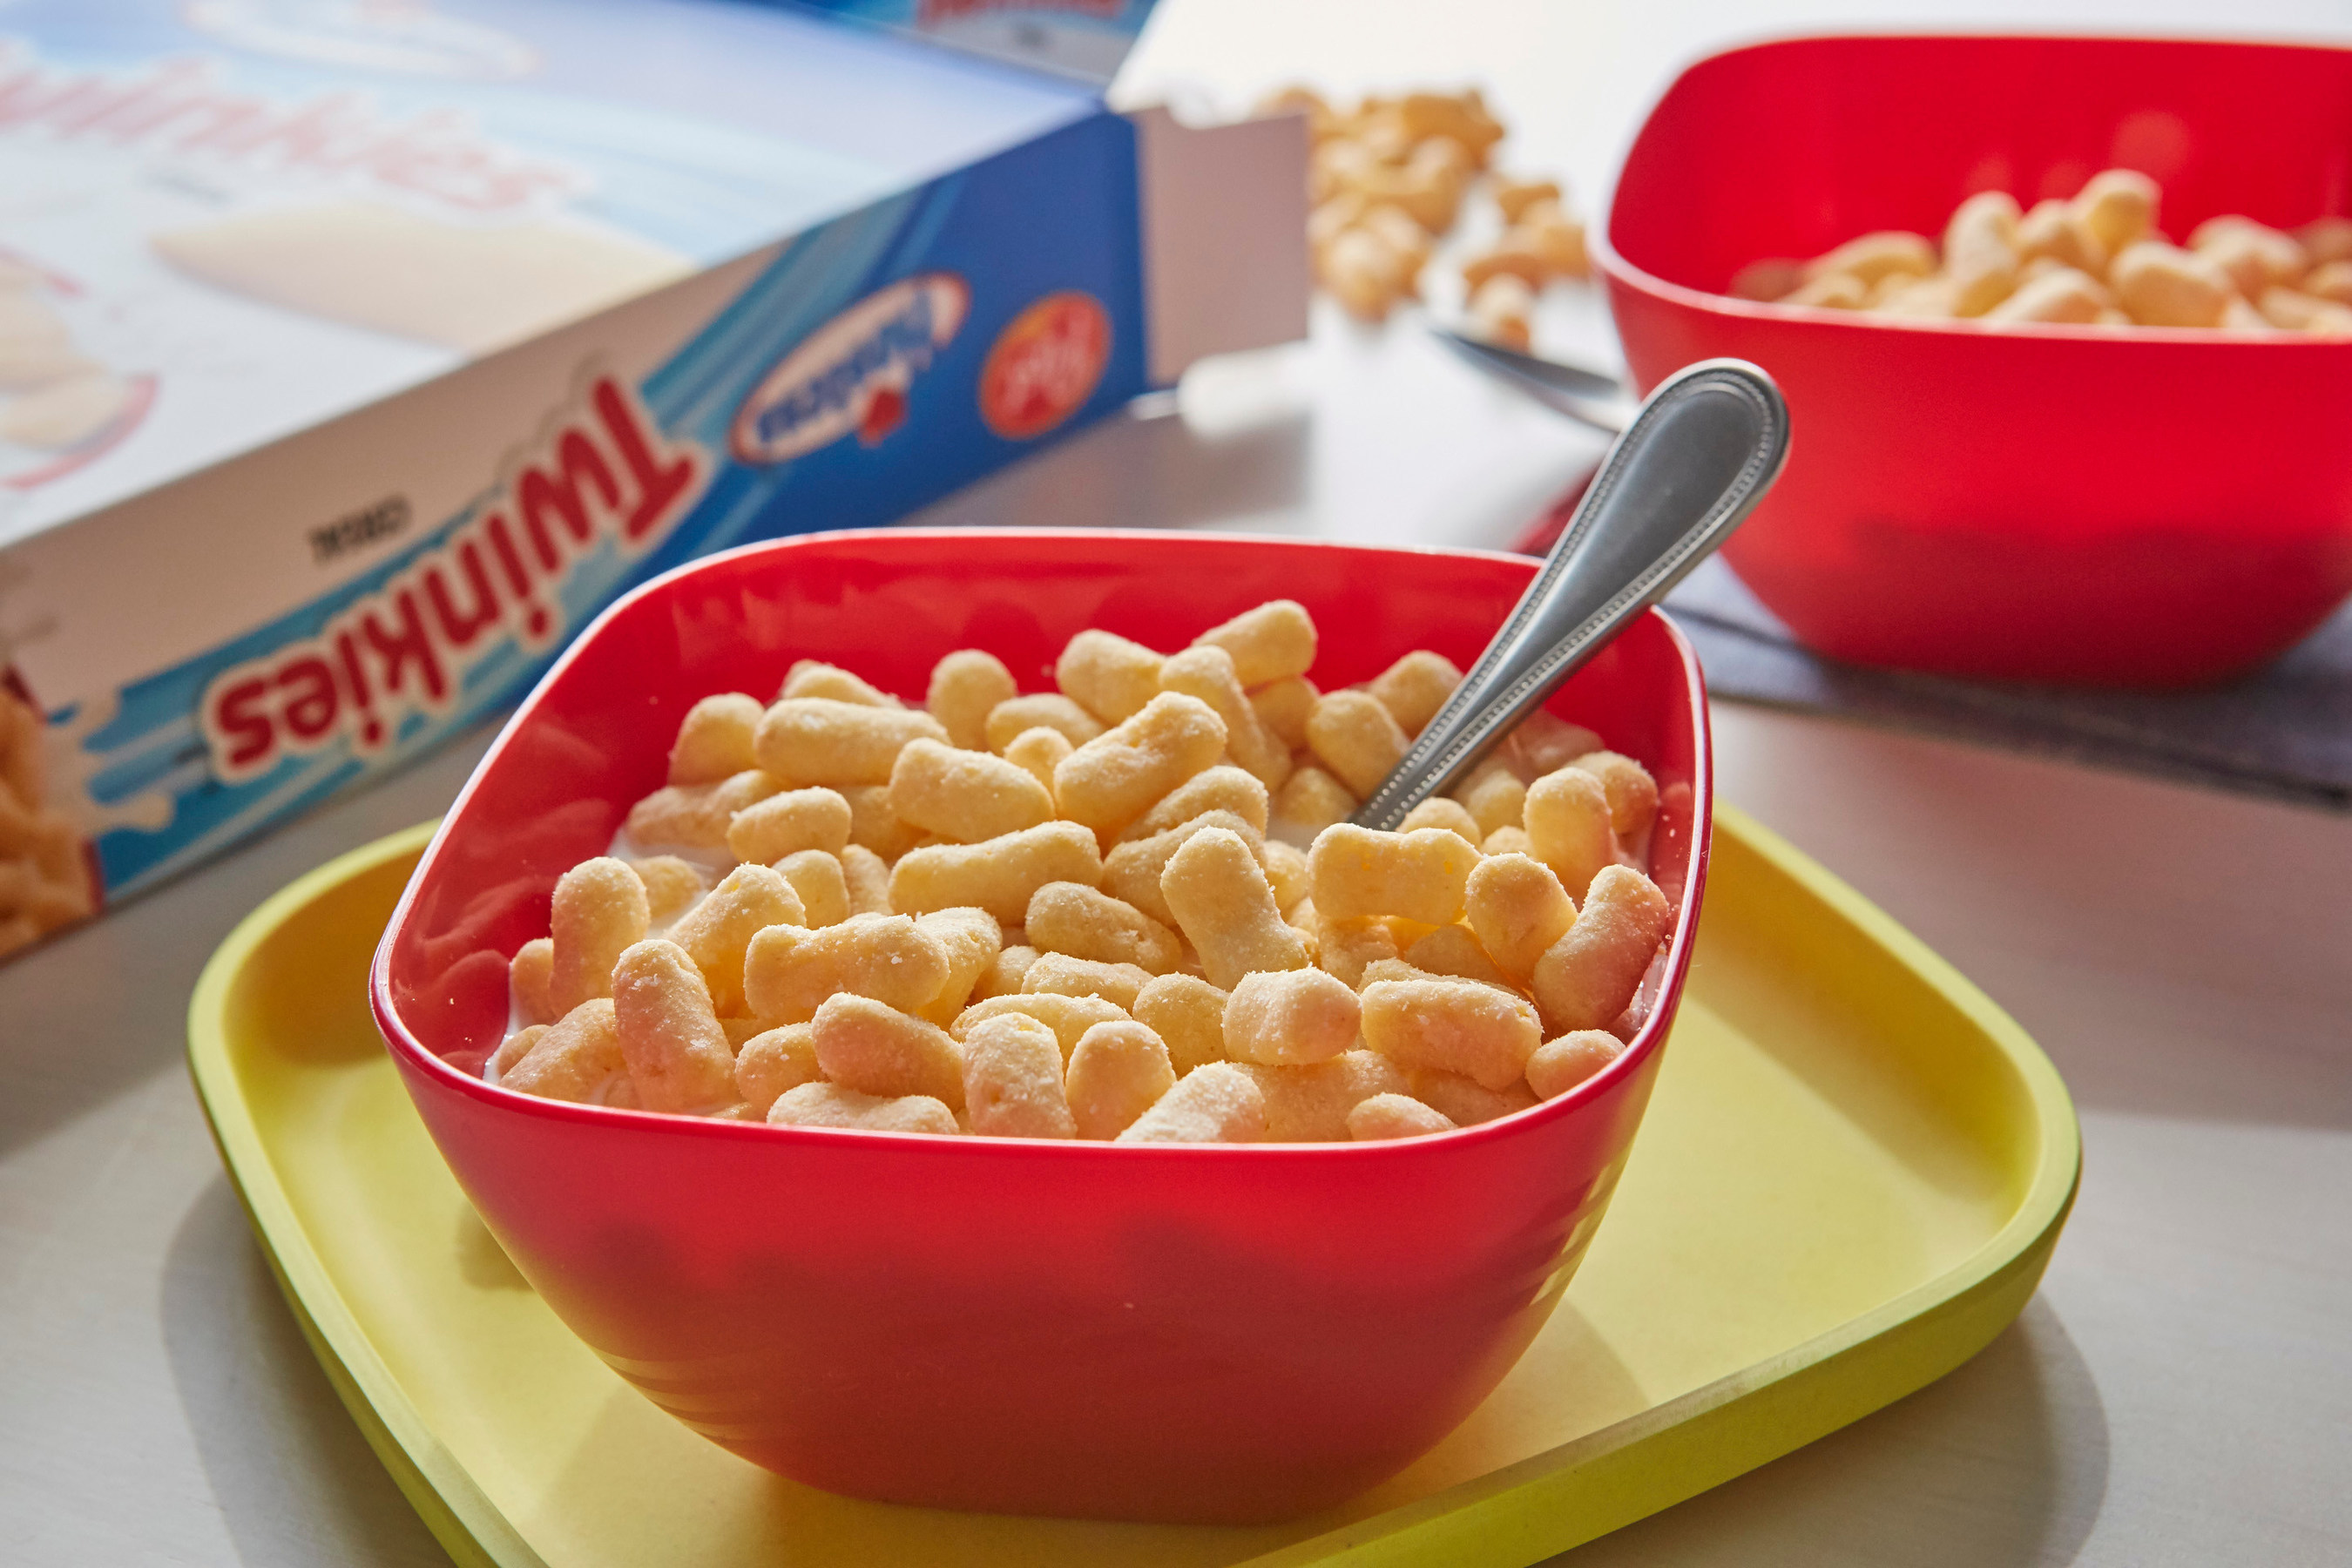 Post Hostess Twinkies Cereal is coming soon to a cereal bowl near you.